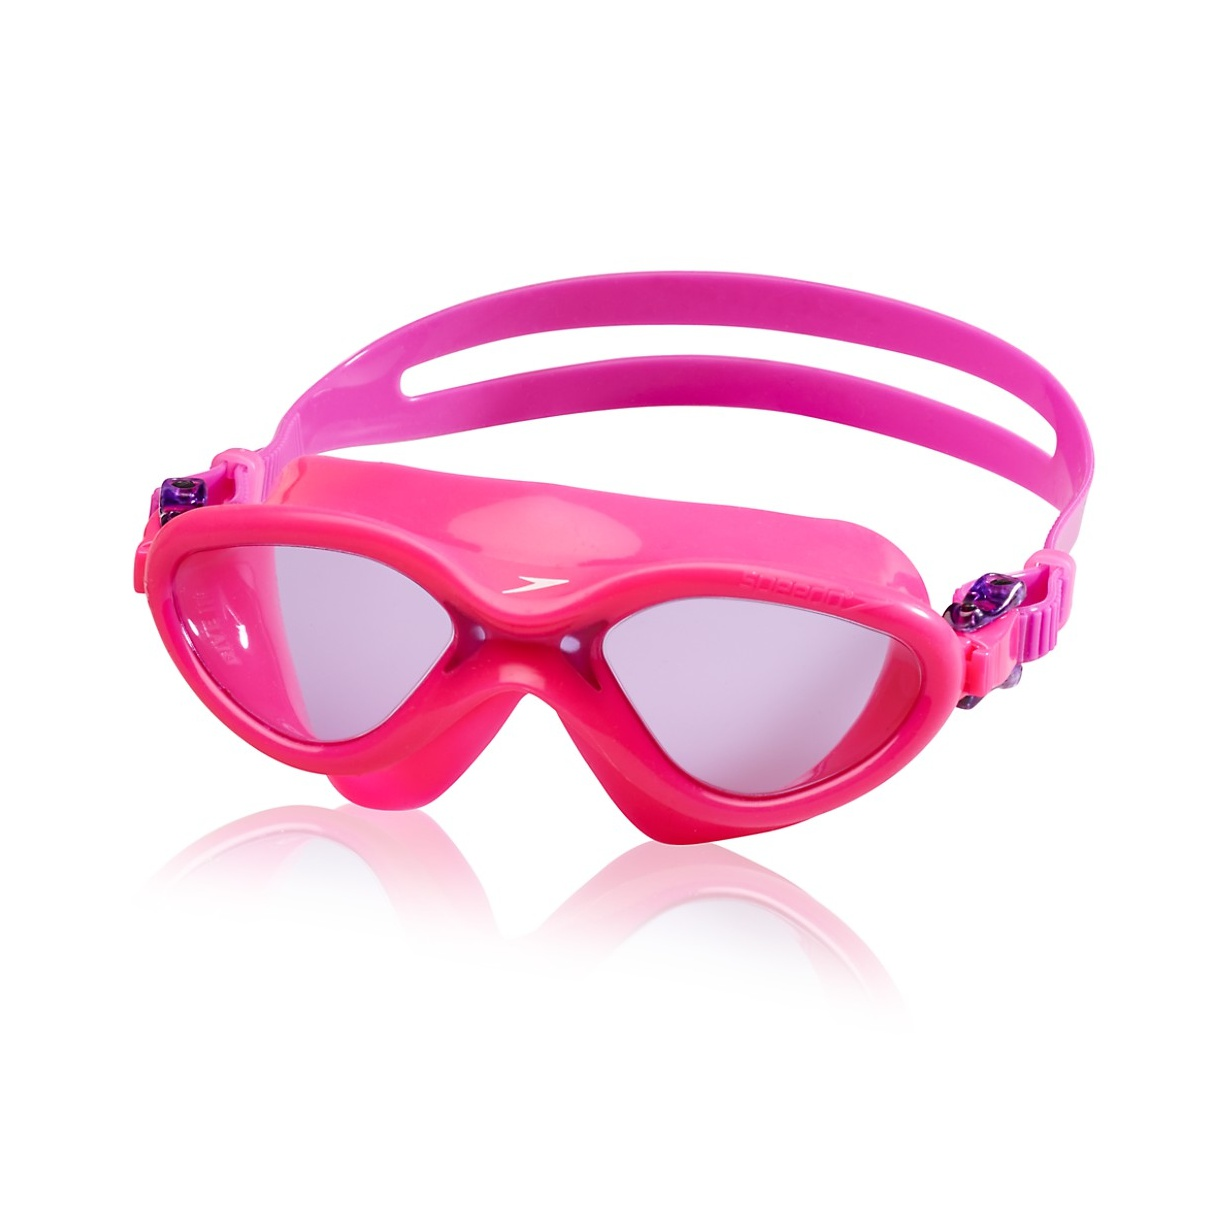 Speedo Kids Hydrospex Classic Swim Mask - Kids Swim Mask - Pink